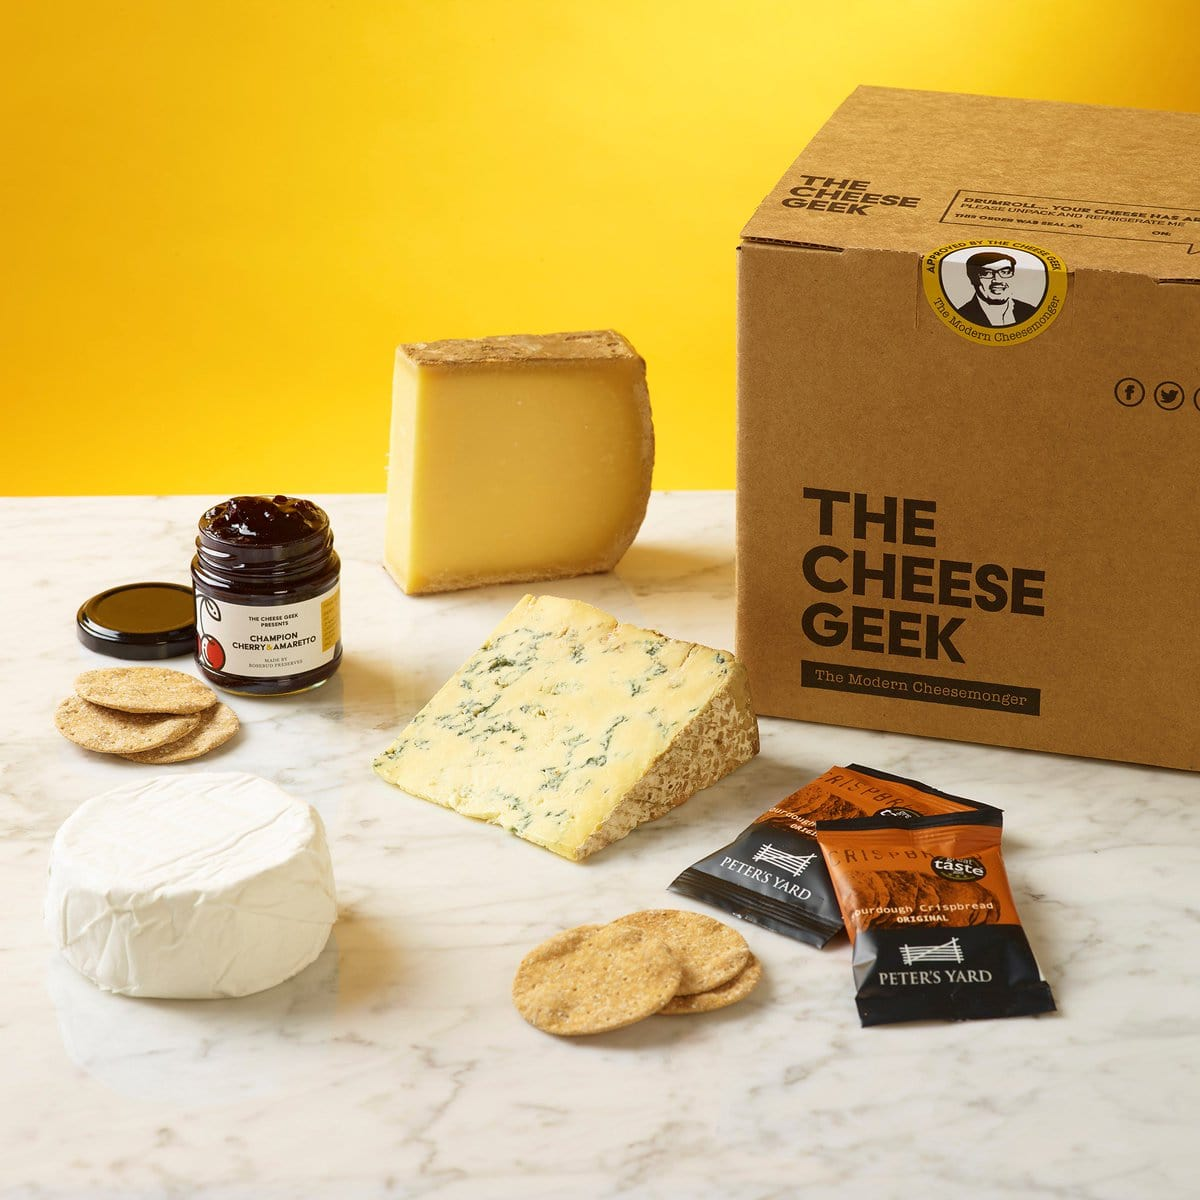 The Cheese Geek - cheese gift subscription box